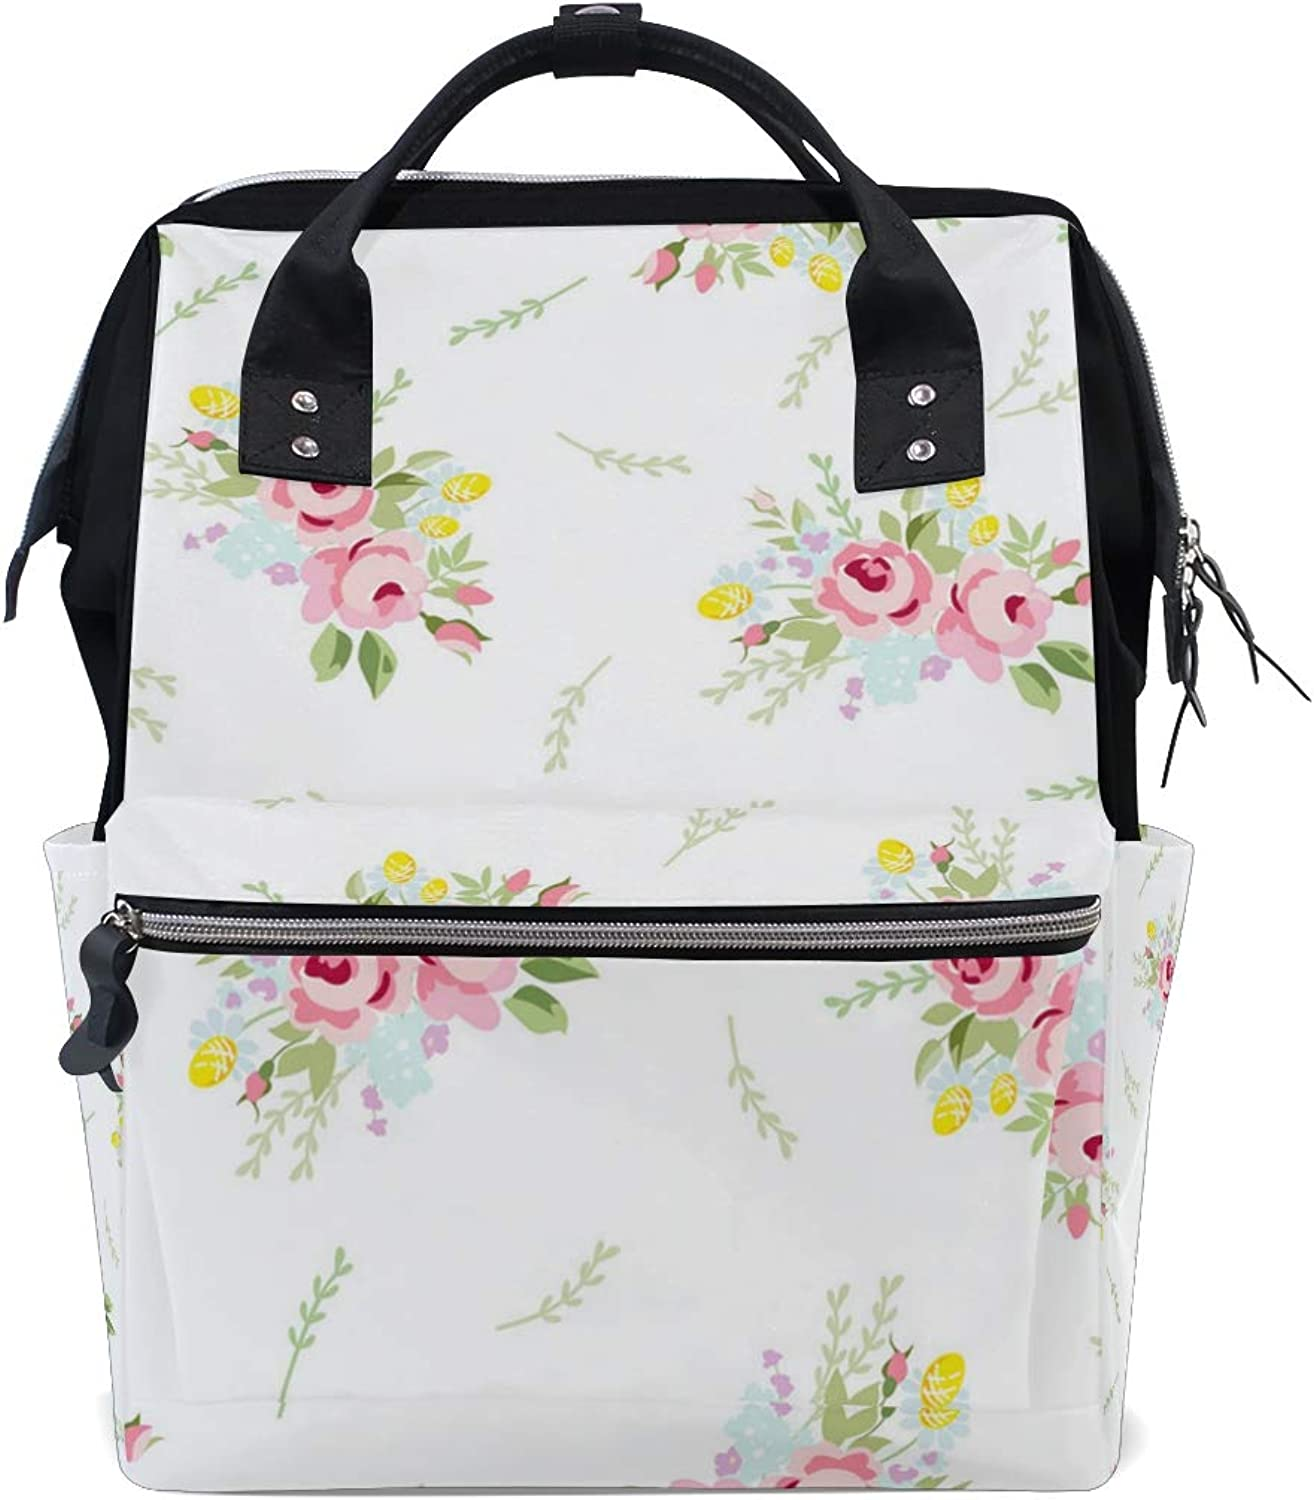 Dried Branch Red Flower Willow Leisure College Backpack Light Travel Male and Female Student Backpack Lightweight Canvas Backpack Medium Handbag Fashion Style Multifunction